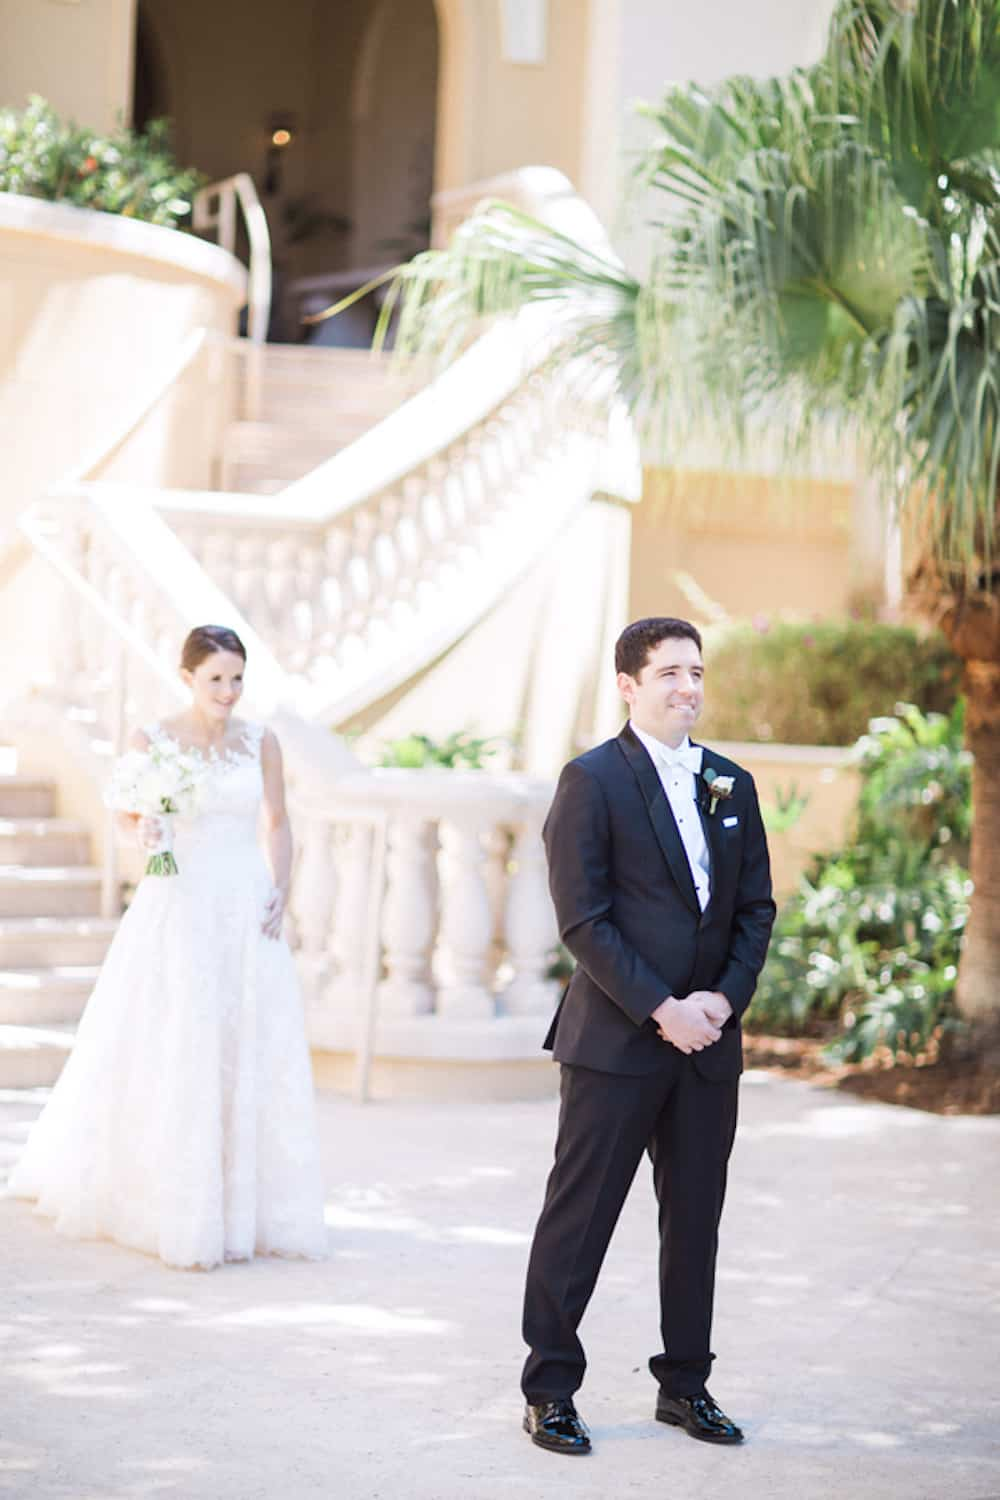 6 Smith_Sikes_HunterRyanPhoto_ritzcarltonsarasotafloridadestinationweddinghunterryanphoto9743_low